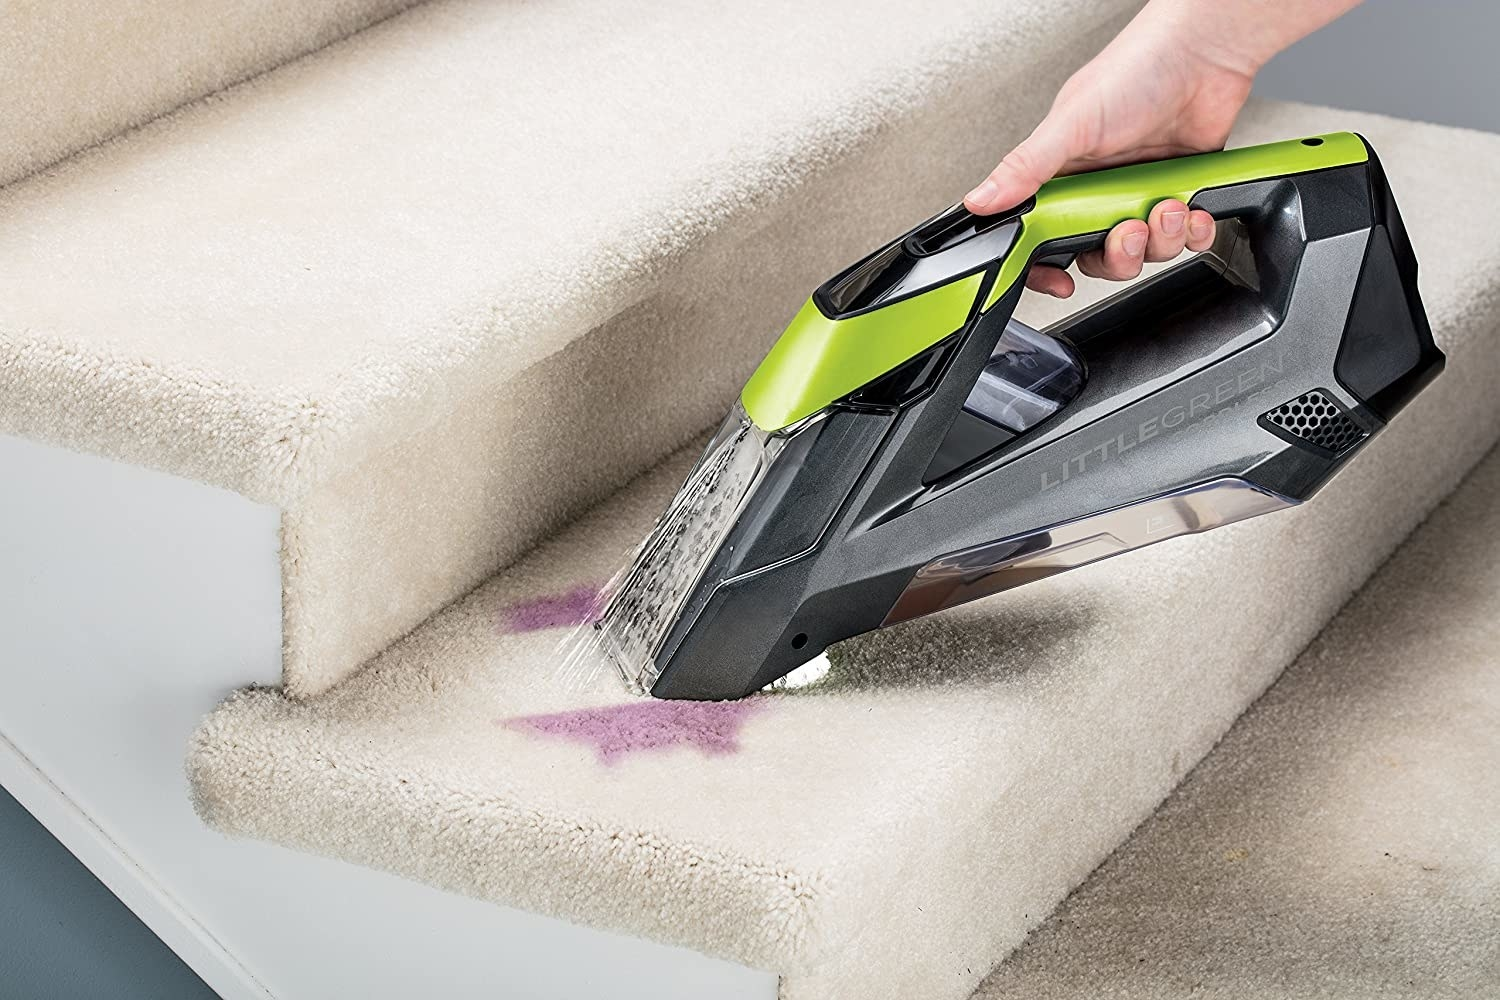 A handheld vaccuum getting rid of a dark carpet stain